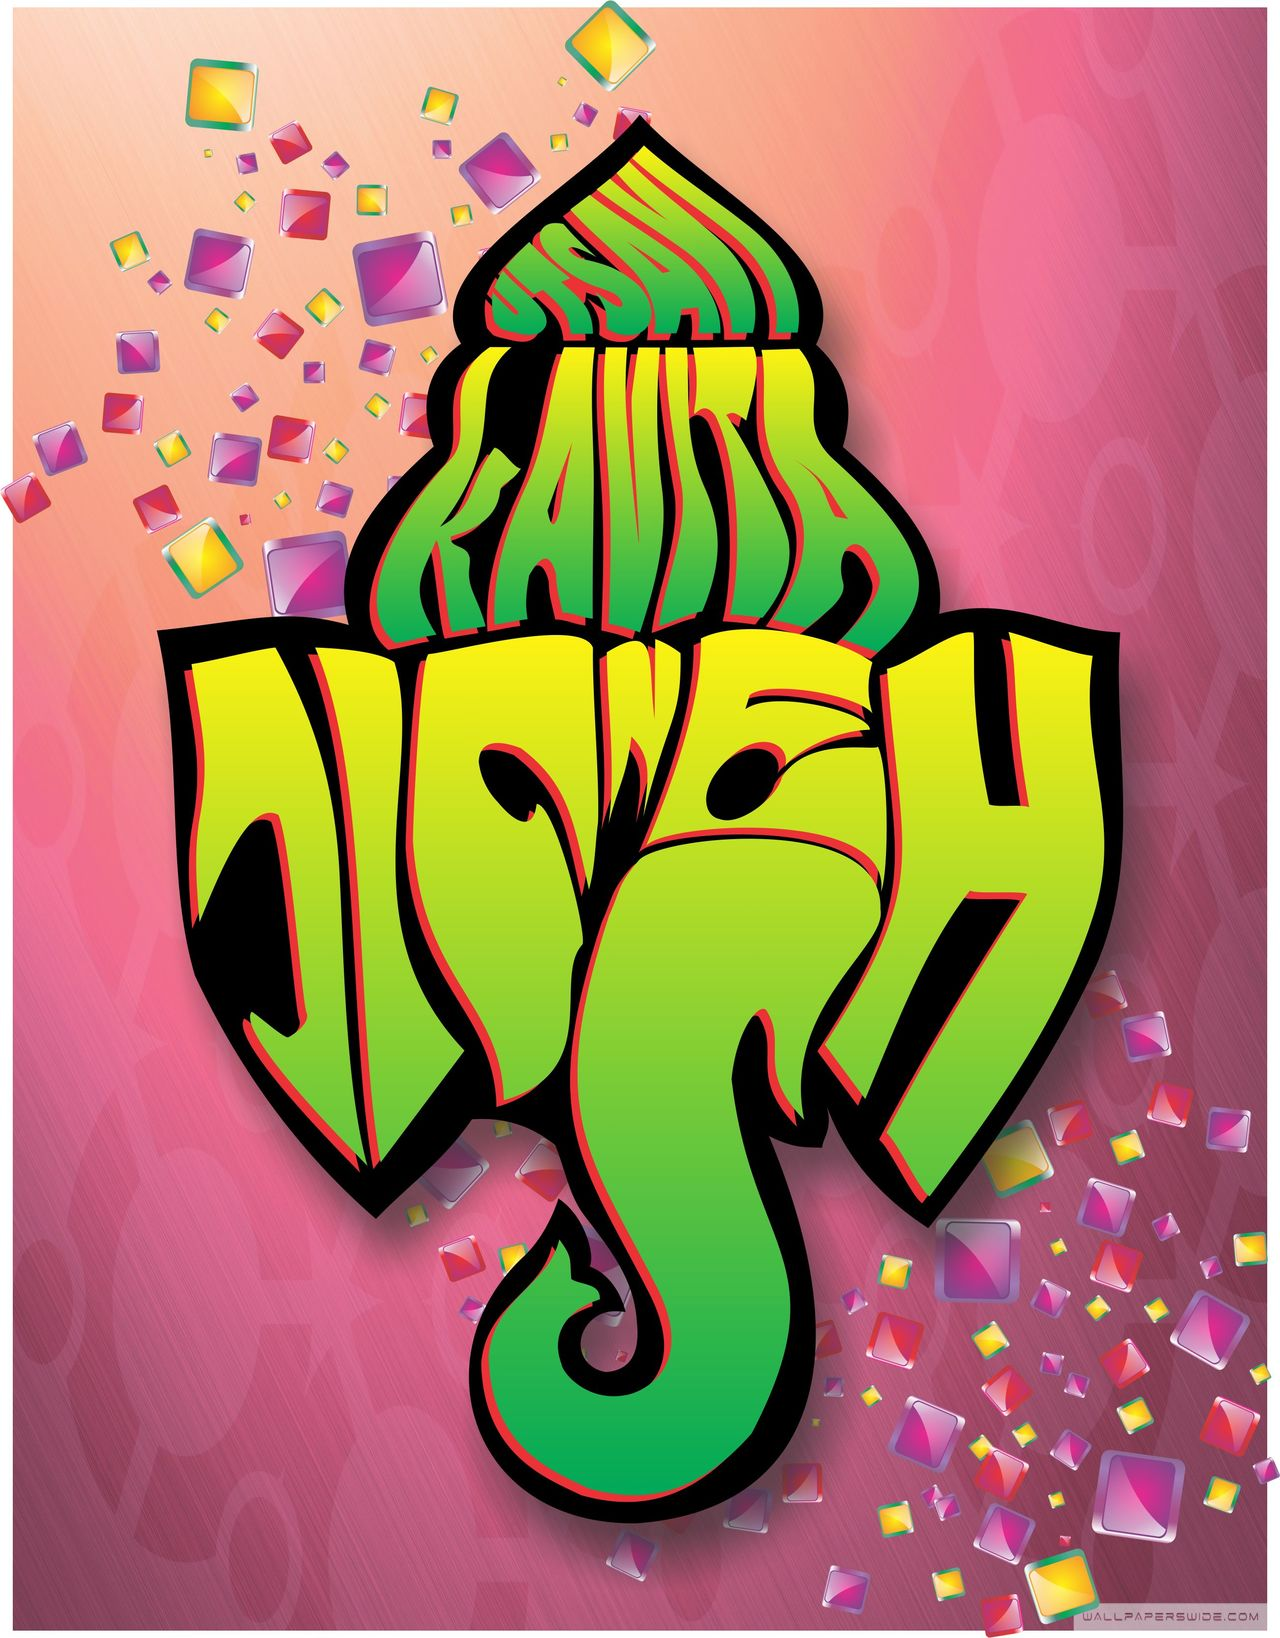 Art Coreldraw Creativity Design Graffiti Graffiti Art Ideas Names In Shape